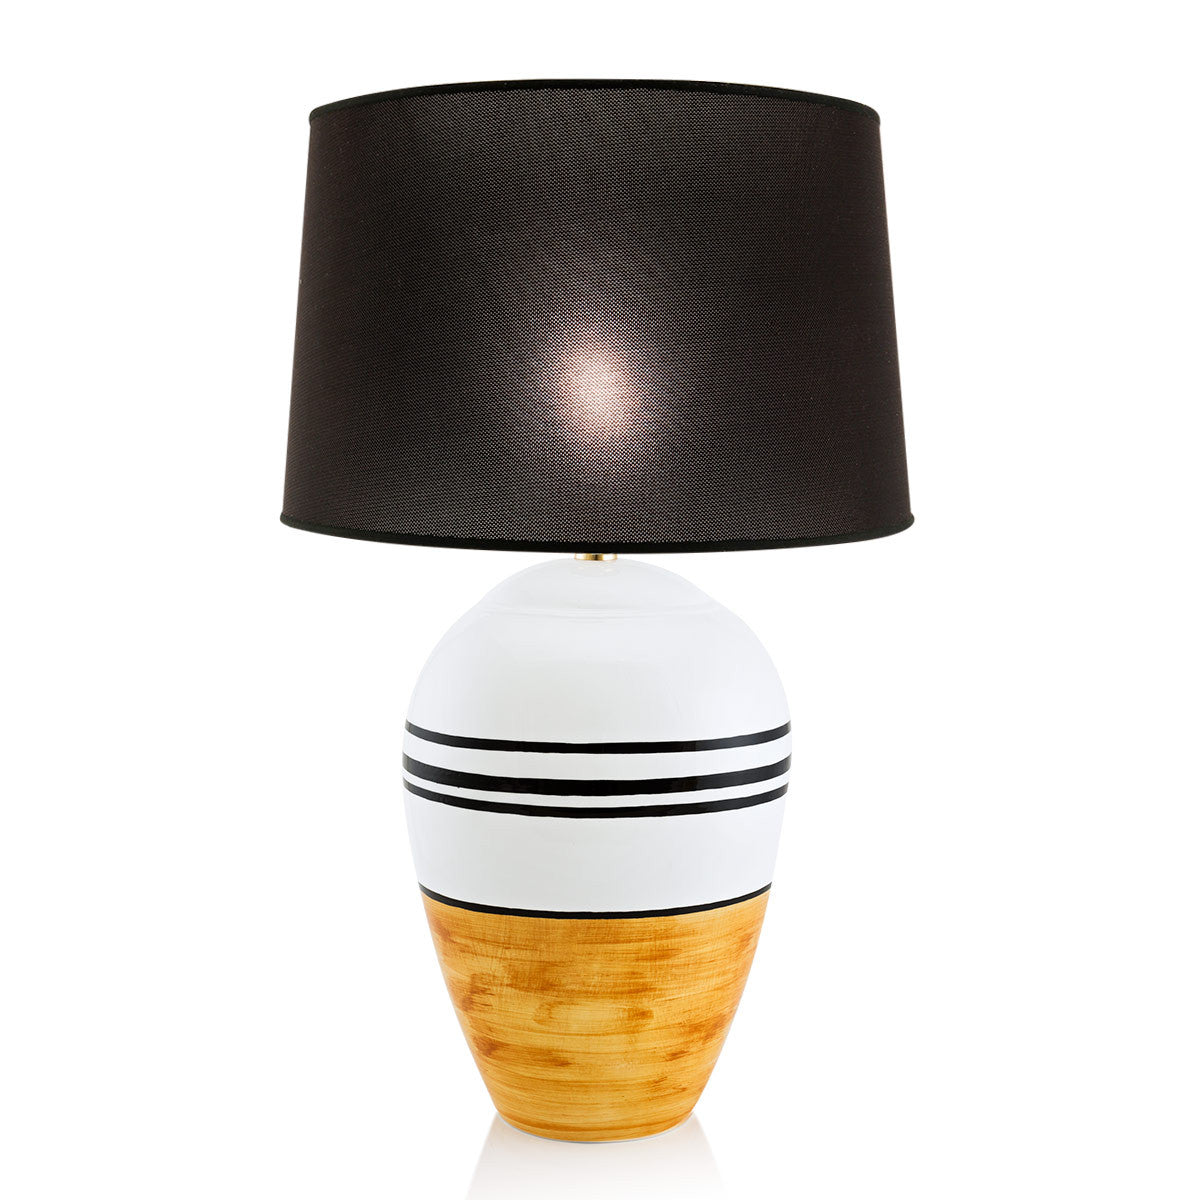 Ceramic oval table lamp | Spinning top